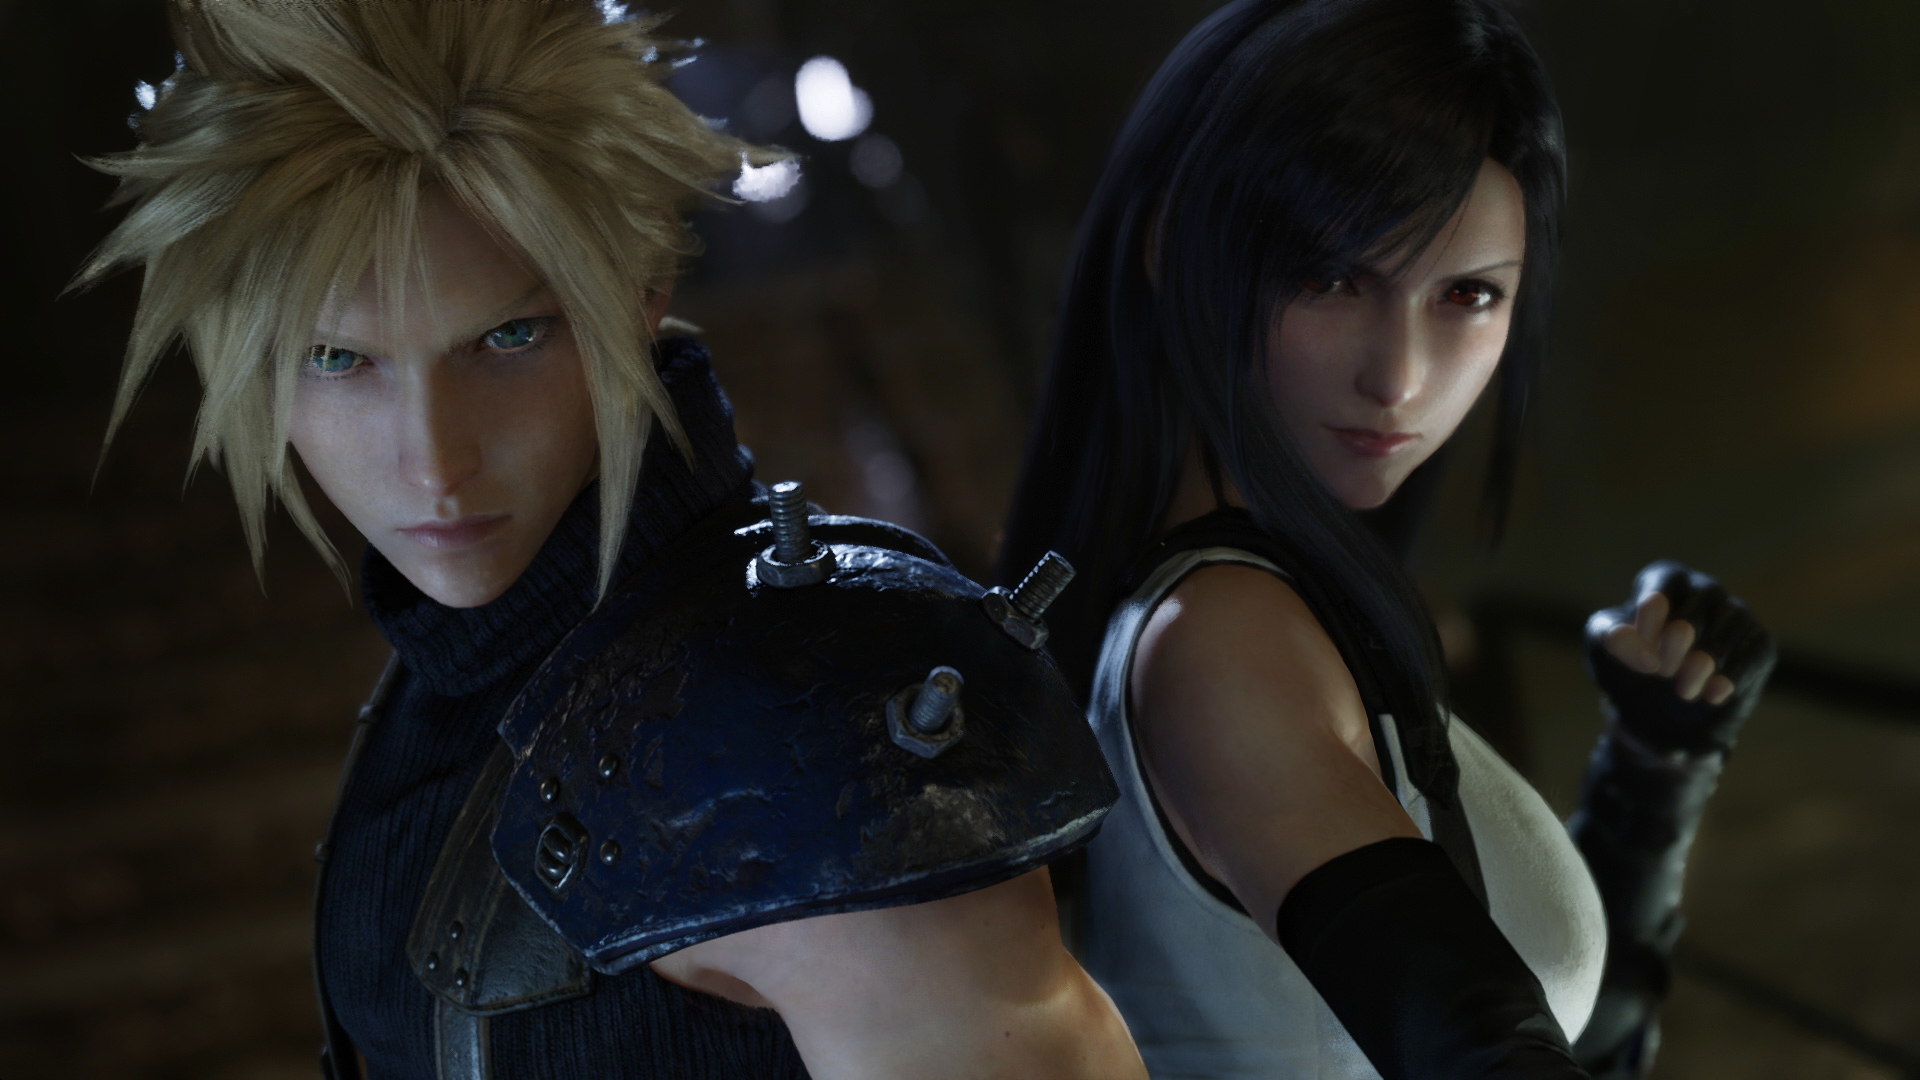 Final Fantasy VII Remake's characters are fully voiced